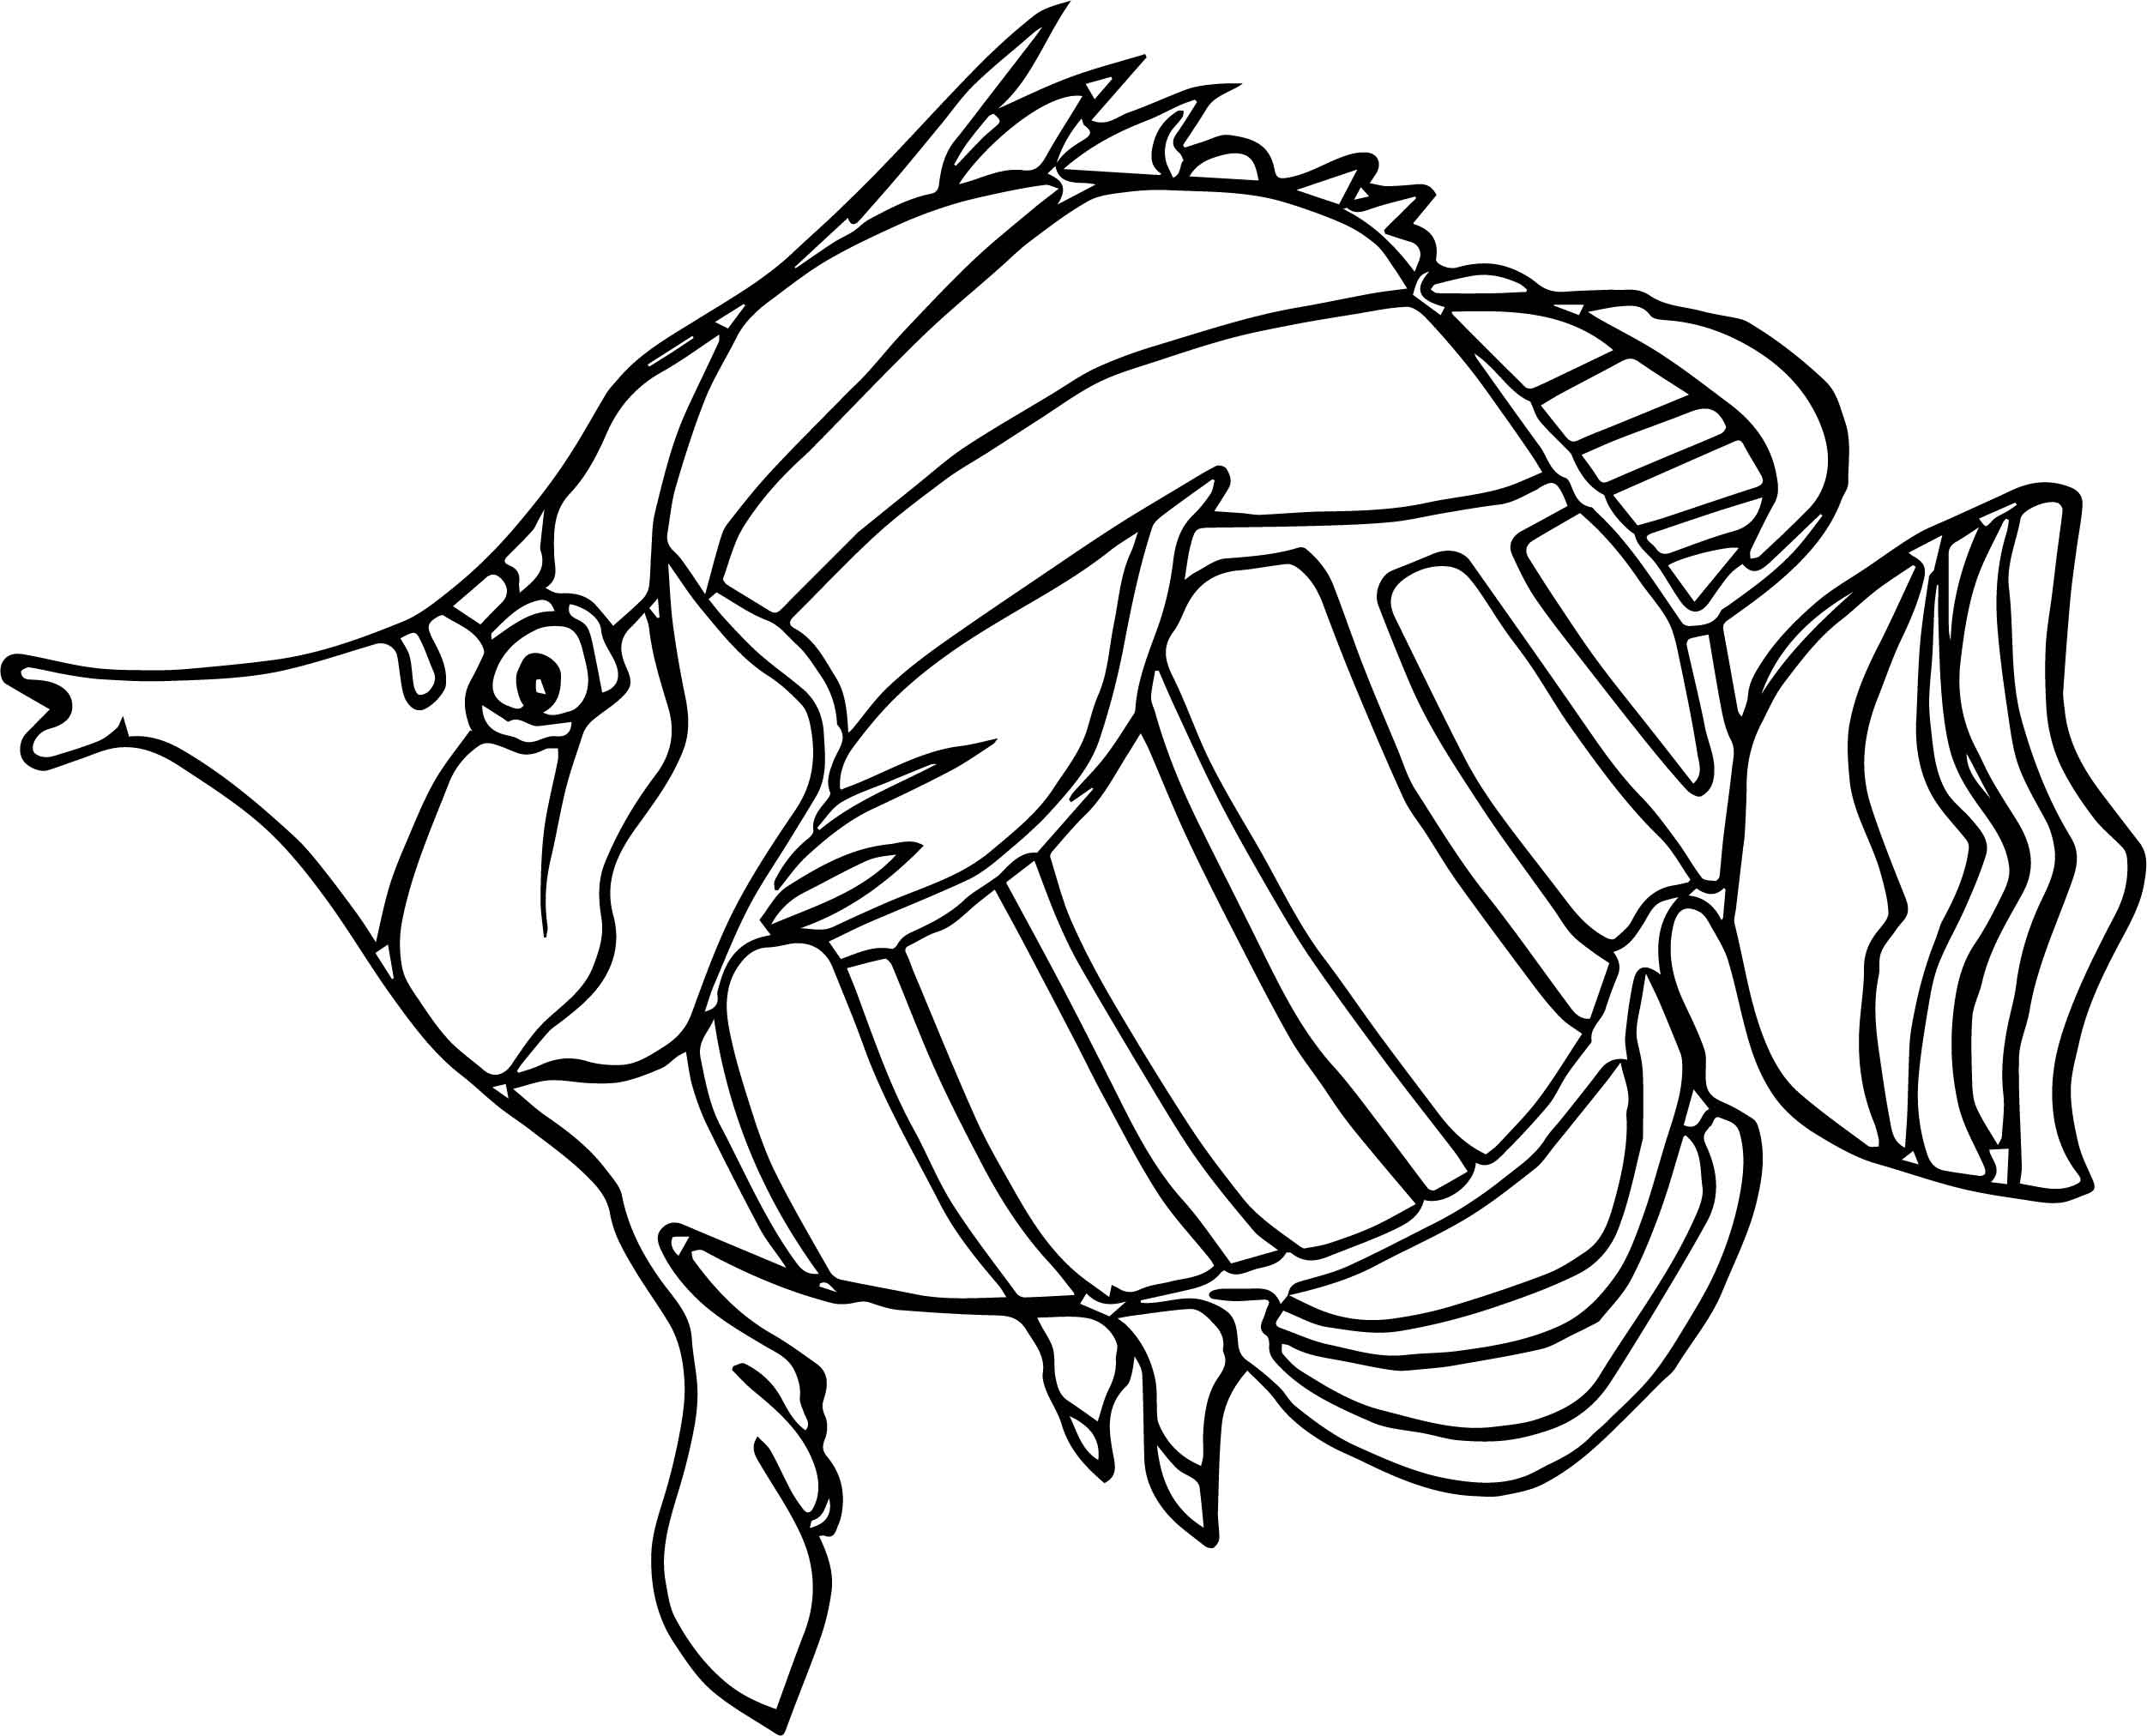 2503x2024 Angel Fish Coloring Page Angel Fish Coloring Page Ancient Angel